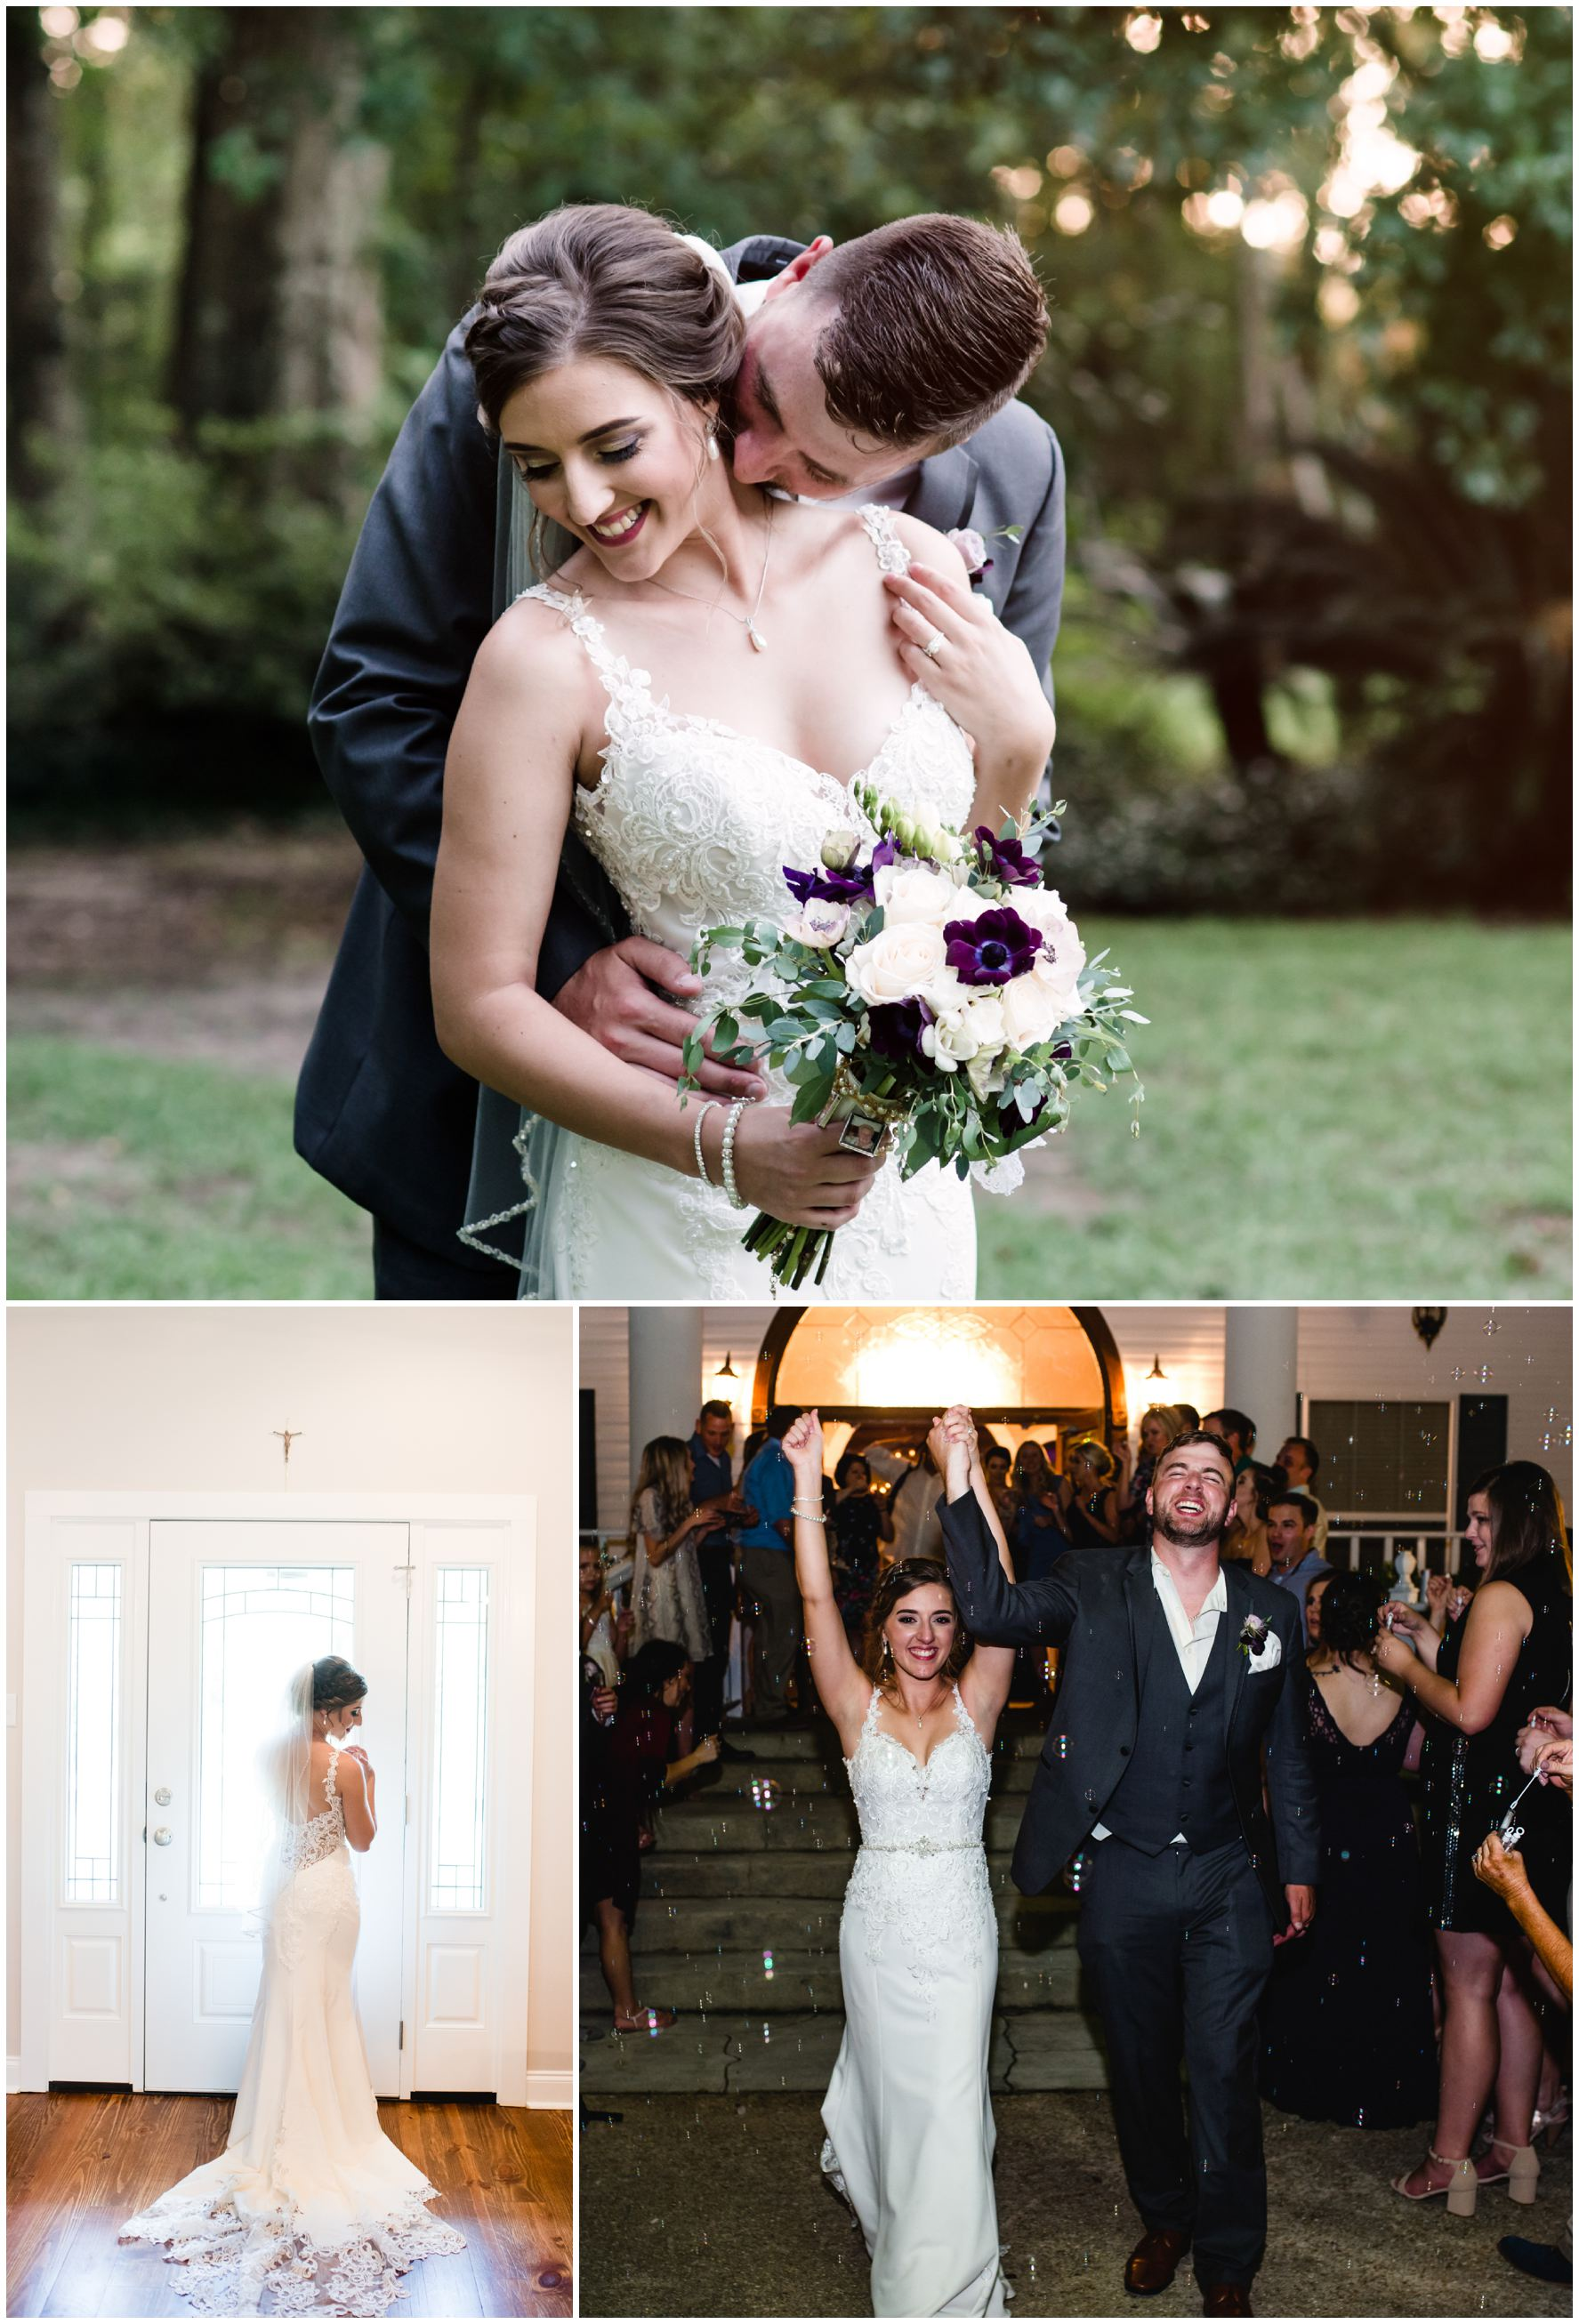 """Our wedding was more perfect than I could have imagined and I am so glad you were able to capture our special day! The photos are absolutely stunning. Josh, my parents and I just looked at them and we all loved every single picture! Loved working with you! You and your assistant were miracle workers."" Brittne'"